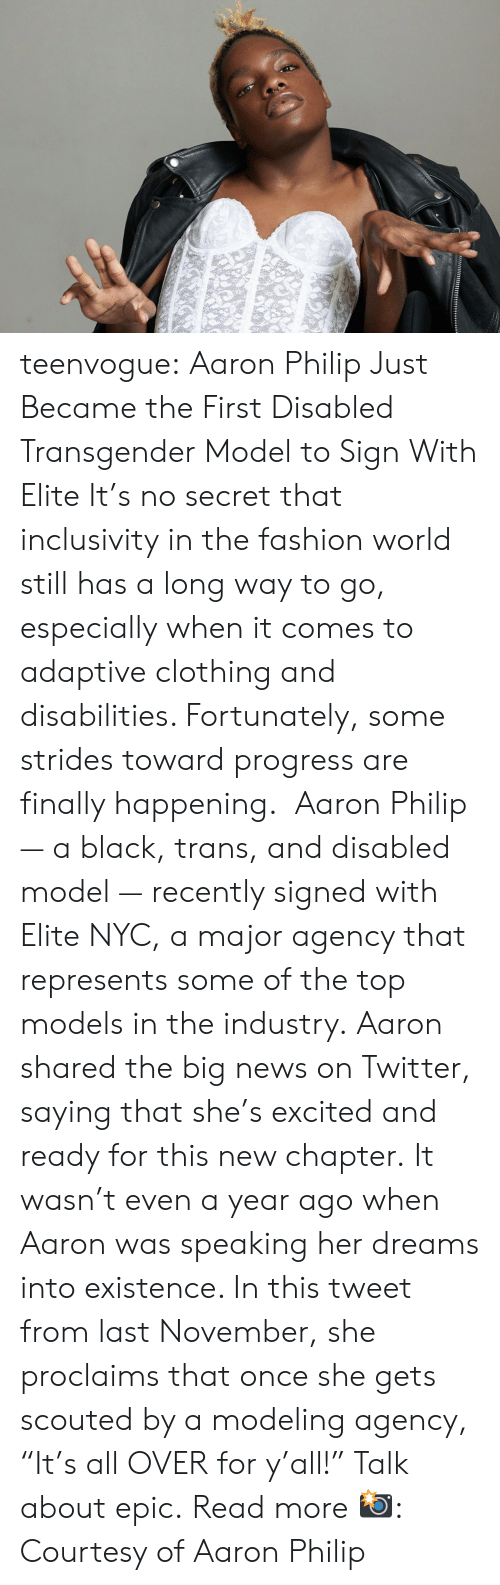 """modeling: teenvogue: Aaron Philip Just Became the First Disabled Transgender Model to Sign With Elite It's no secret that inclusivity in the fashion world still has a long way to go, especially when it comes to adaptive clothing and disabilities. Fortunately, some strides toward progress are finally happening. Aaron Philip — a black, trans, and disabled model — recently signed with Elite NYC, a major agency that represents some of the top models in the industry. Aaron shared the big news on Twitter, saying that she's excited and ready for this new chapter. It wasn't even a year ago when Aaron was speaking her dreams into existence. In this tweet from last November, she proclaims that once she gets scouted by a modeling agency, """"It's all OVER for y'all!"""" Talk about epic. Read more 📸: Courtesy of Aaron Philip"""